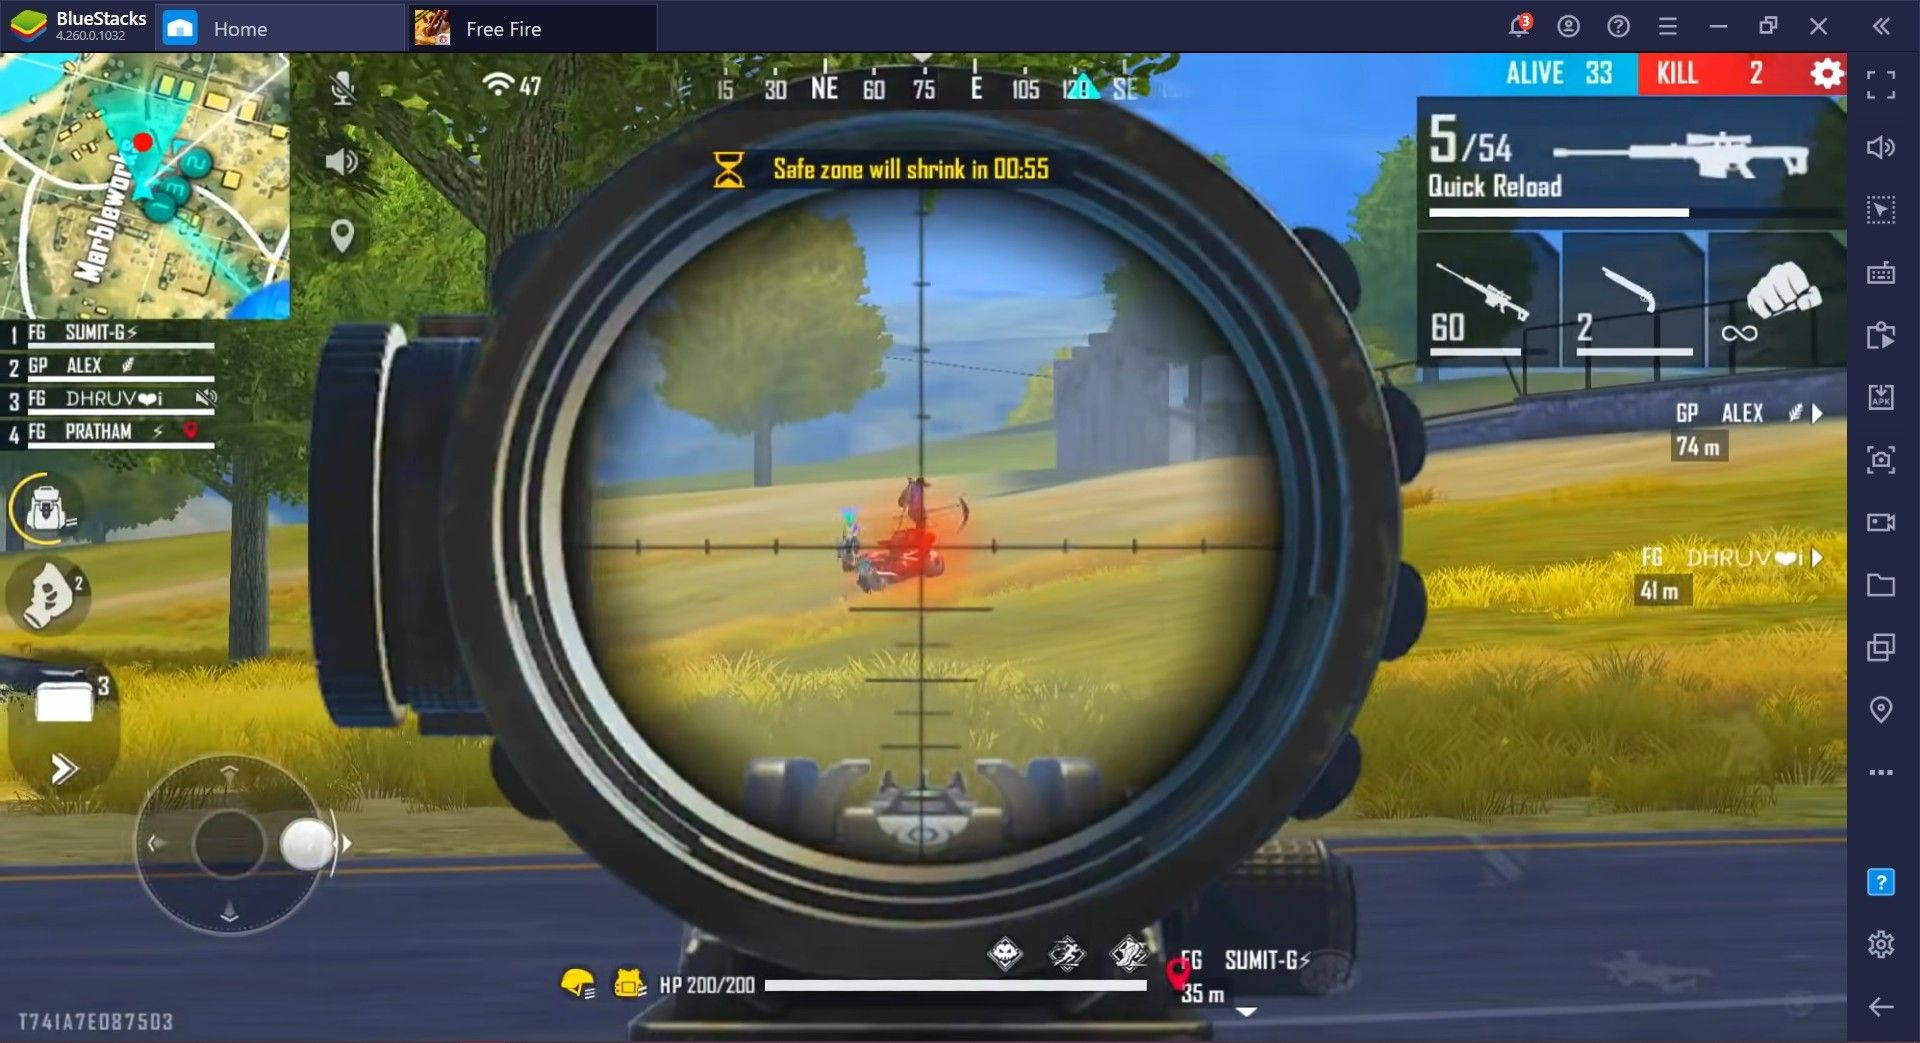 A Complete Guide for Wanna be Snipers of Garena Free Fire, Learn Your Place